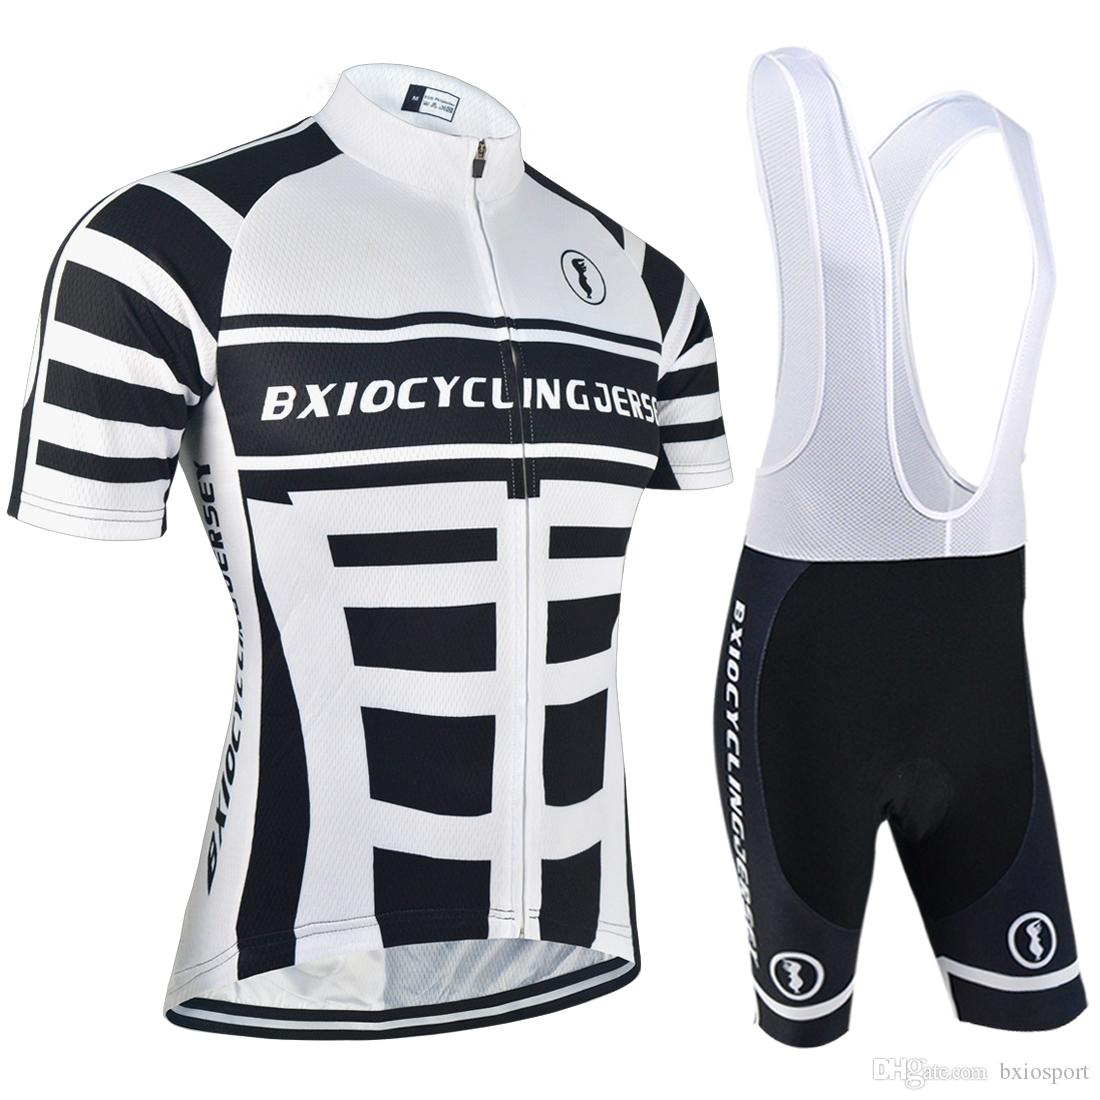 BXIO Cycling Jerseys Cool Men Cycle Clothing Sets For Cyclist Short Sleeve  Lycra Cycle Clothing Summer Cycling Apparel Kits BX 002 Cycling Jerseys Men  ... 3614a5c8c